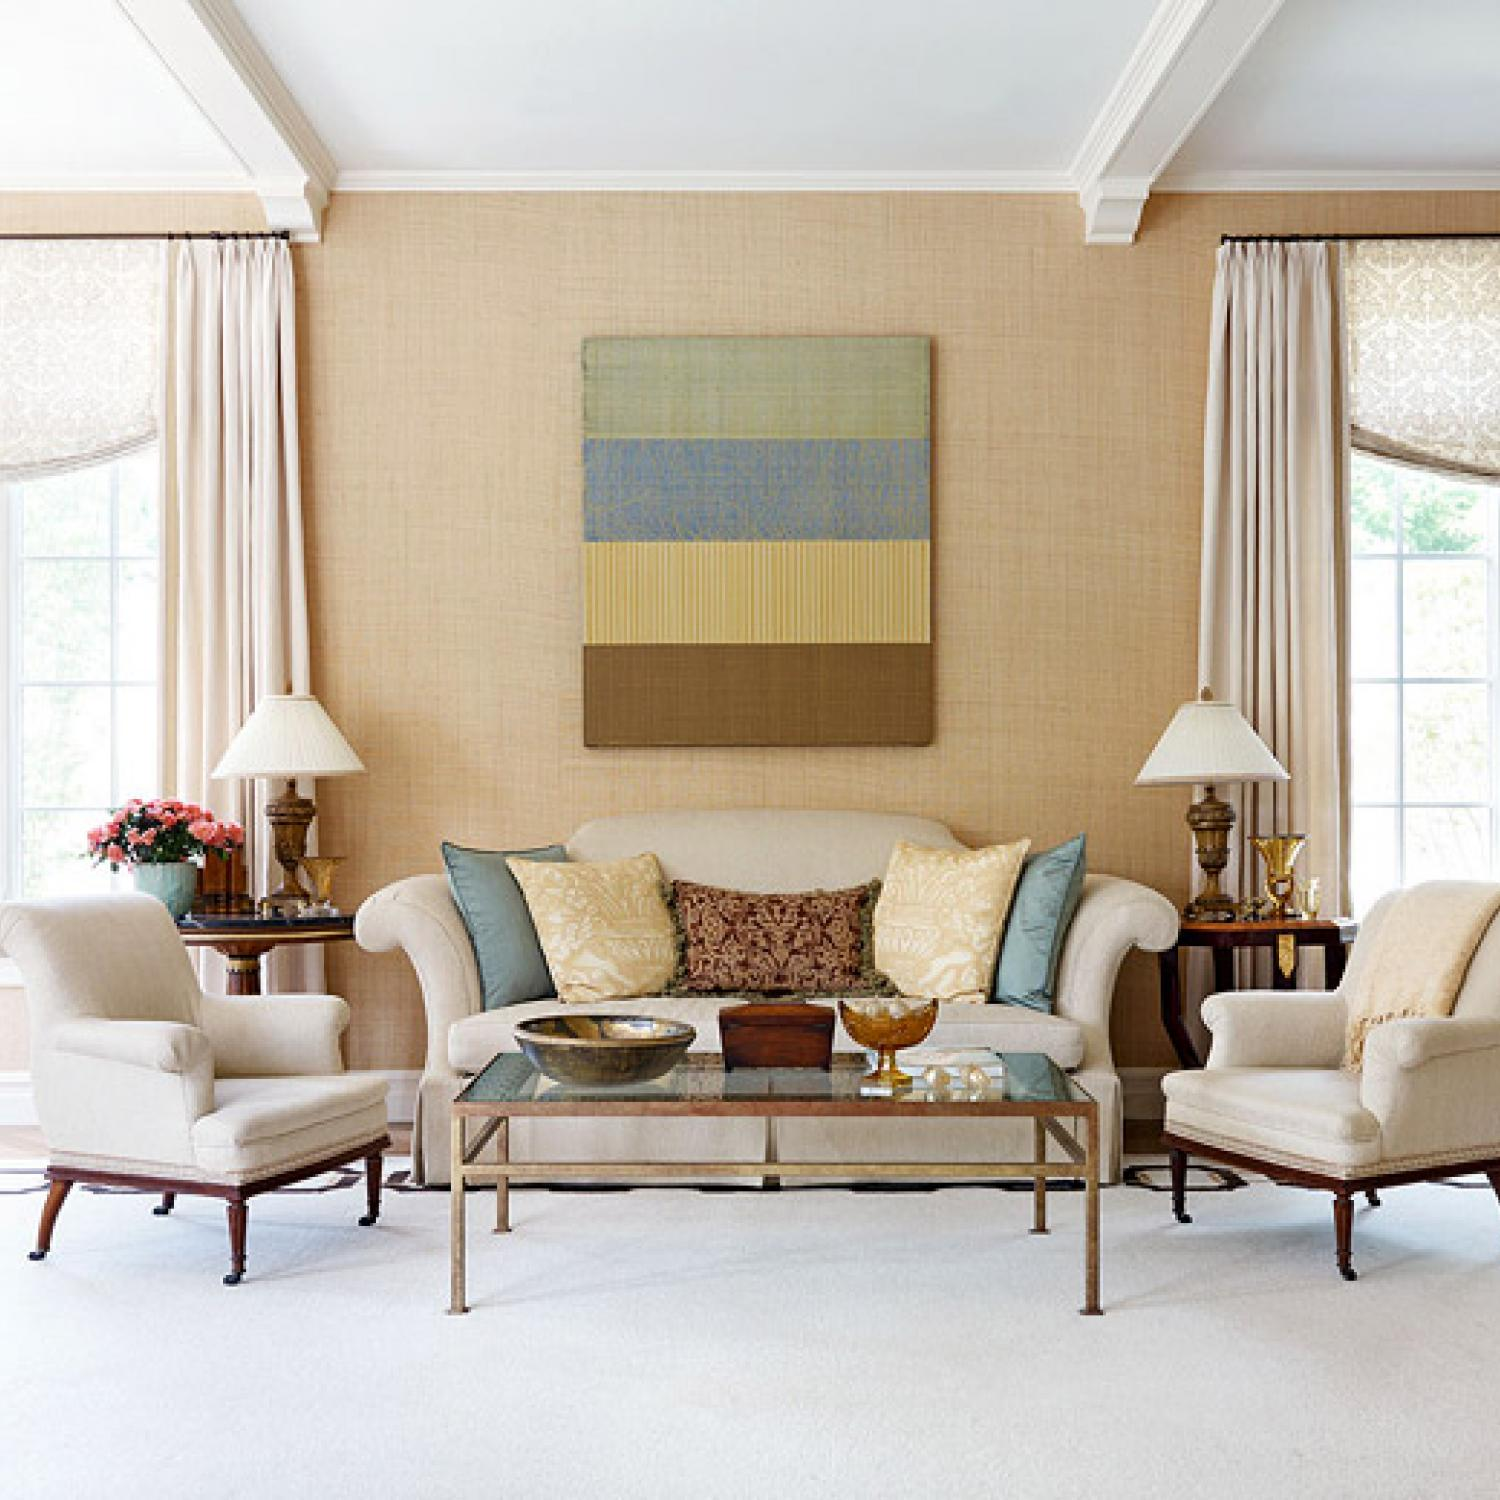 Excellent Ideas For Decorating A Living Room Design Ideas